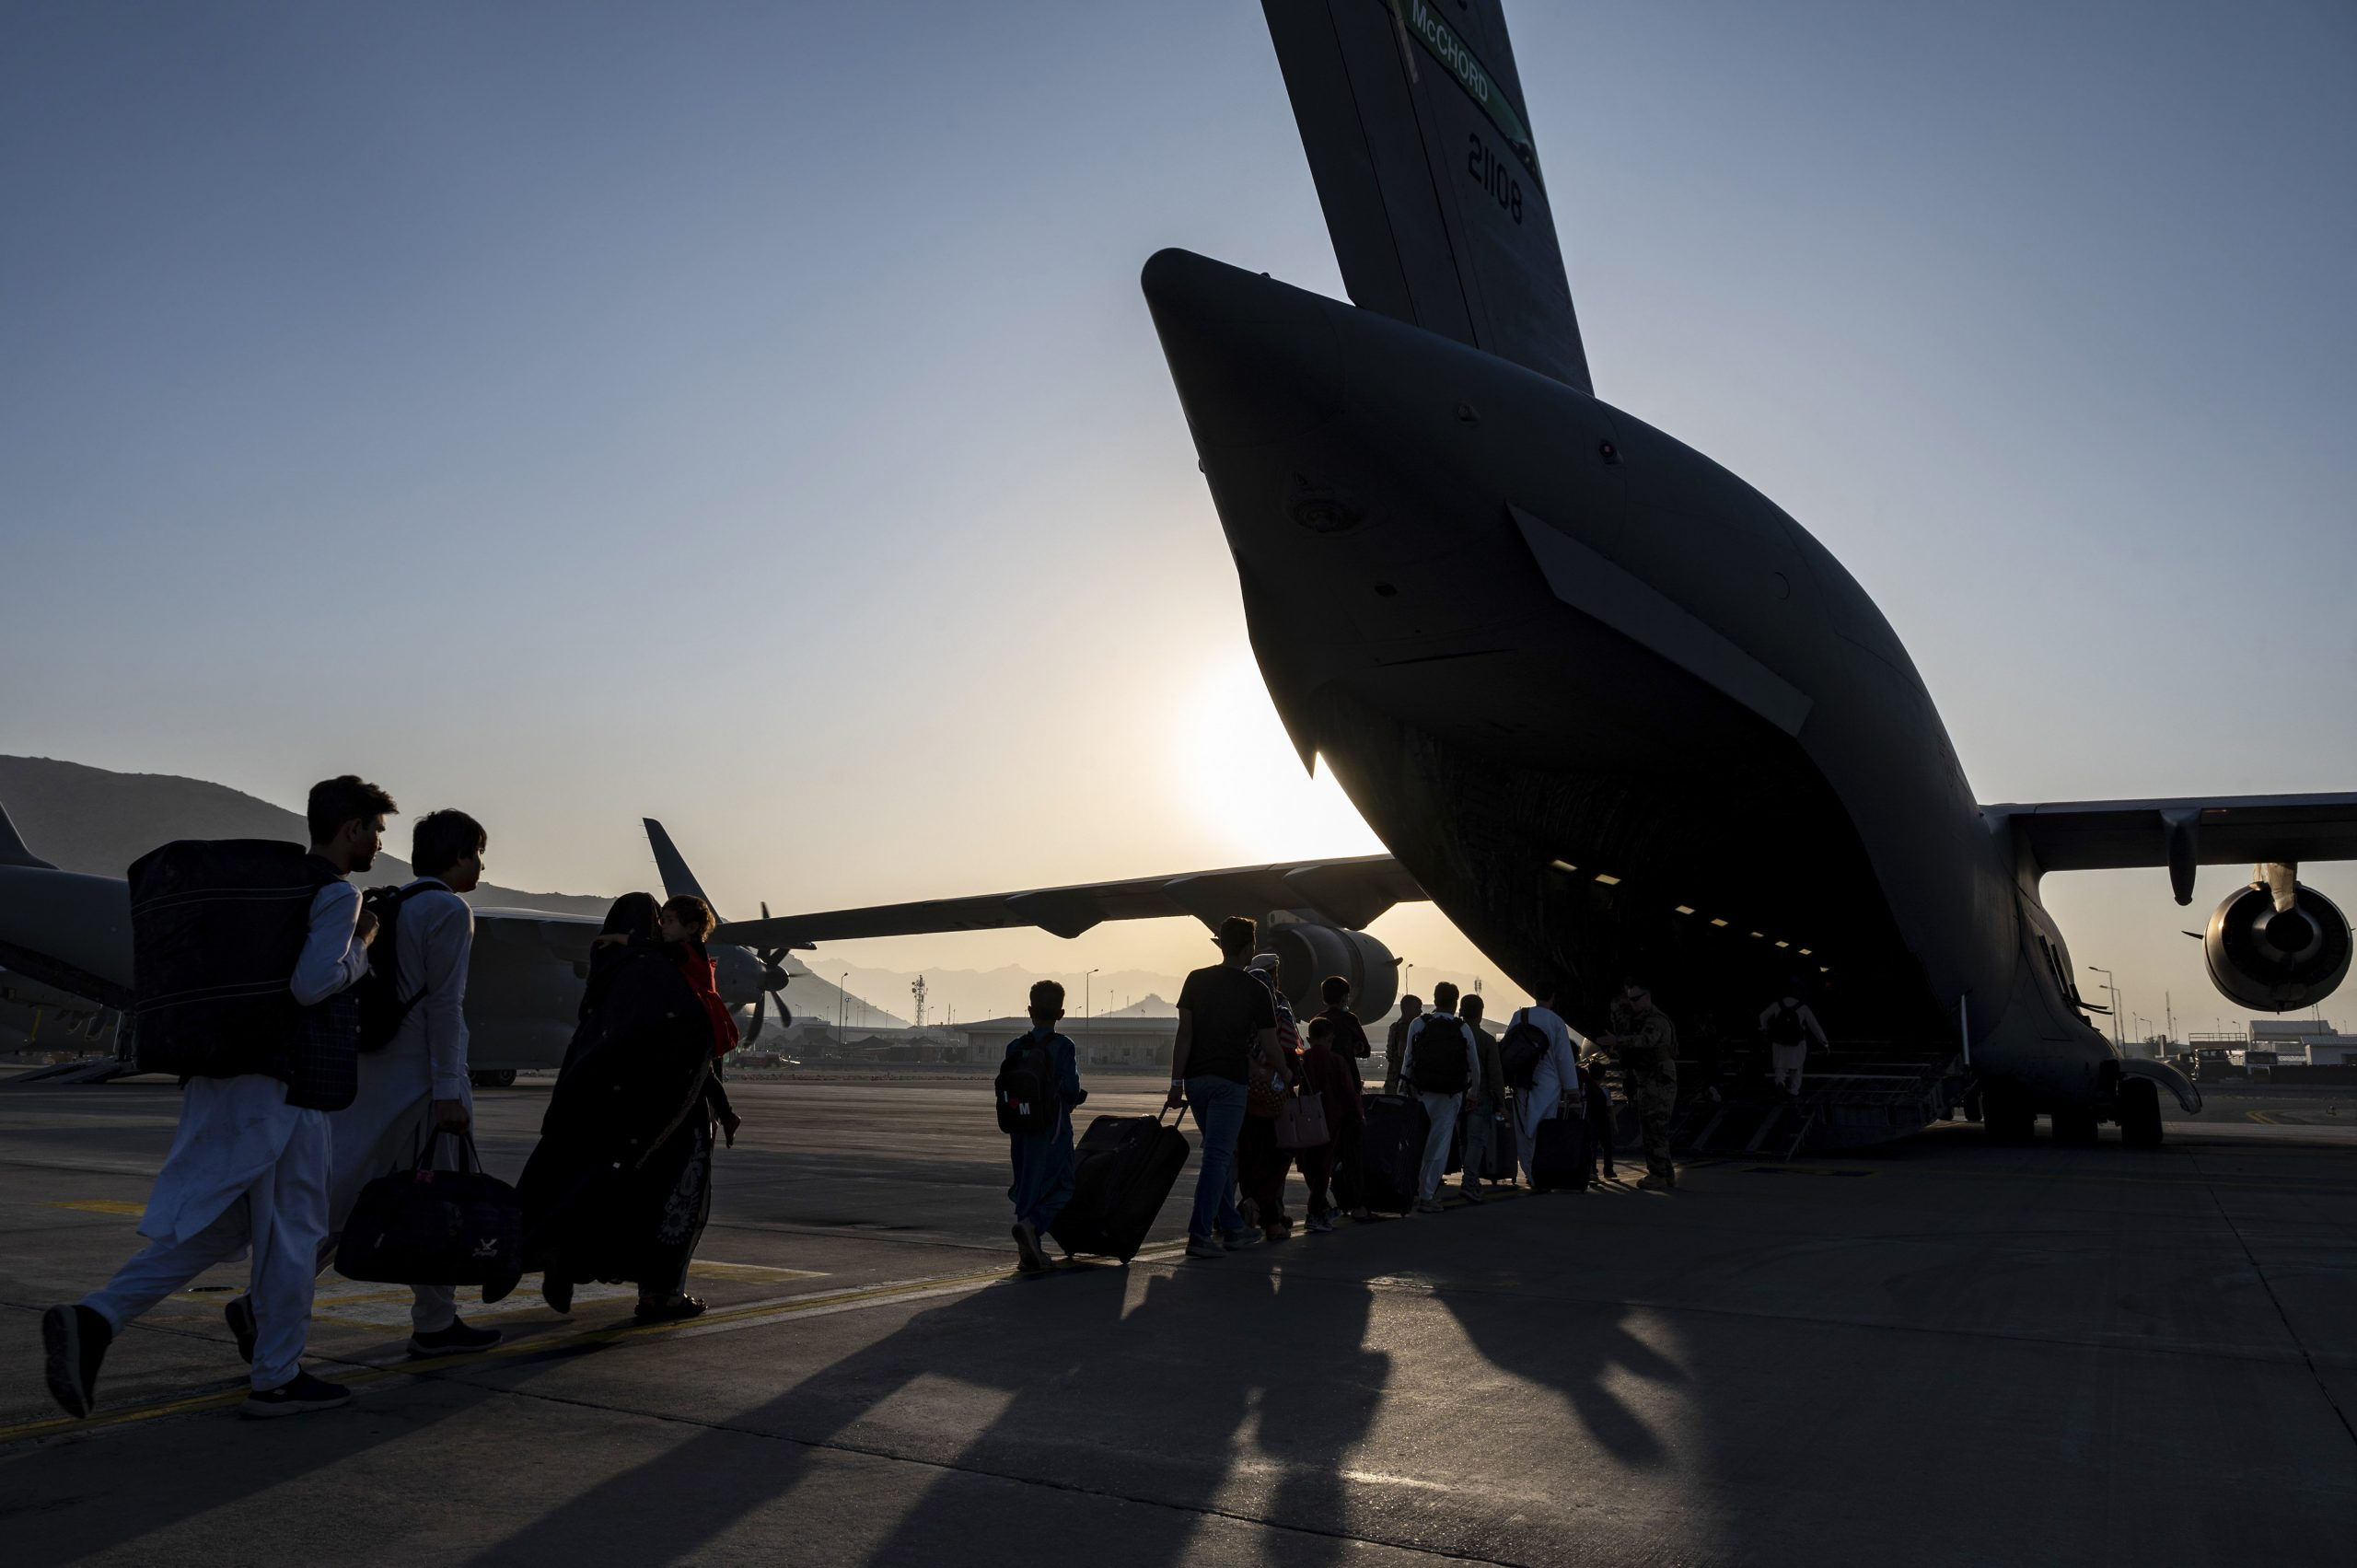 Hungary's Evacuation Mission in Afghanistan Comes to an End